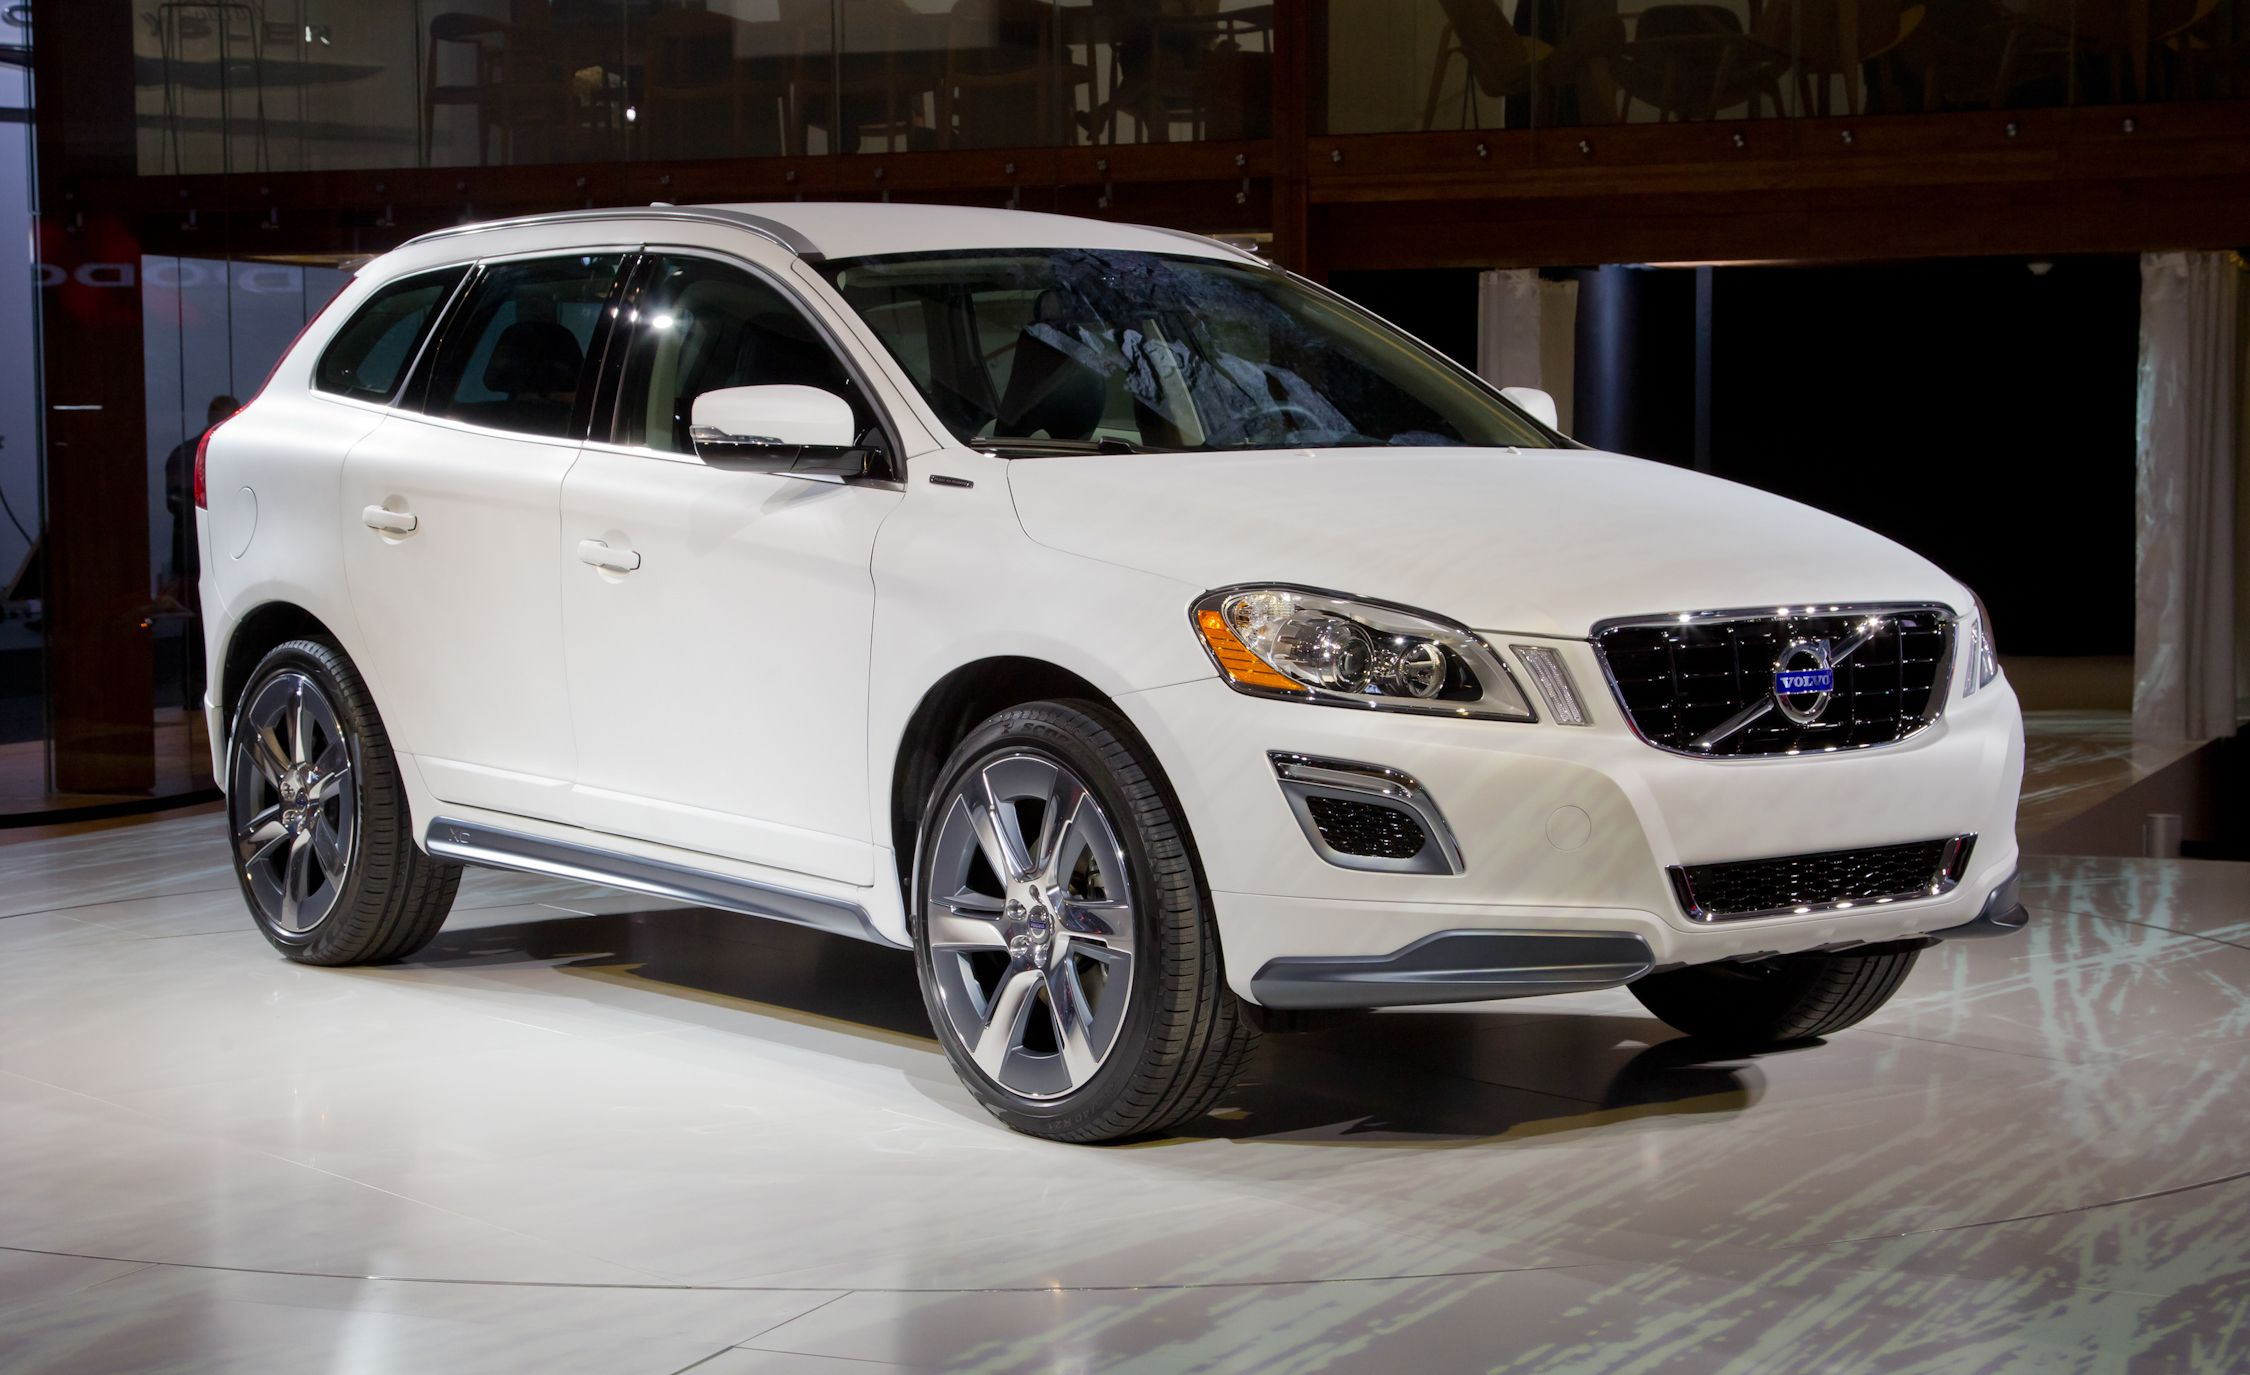 volvo xc60 plug-in hybrid concept at the 2012 detroit show | news